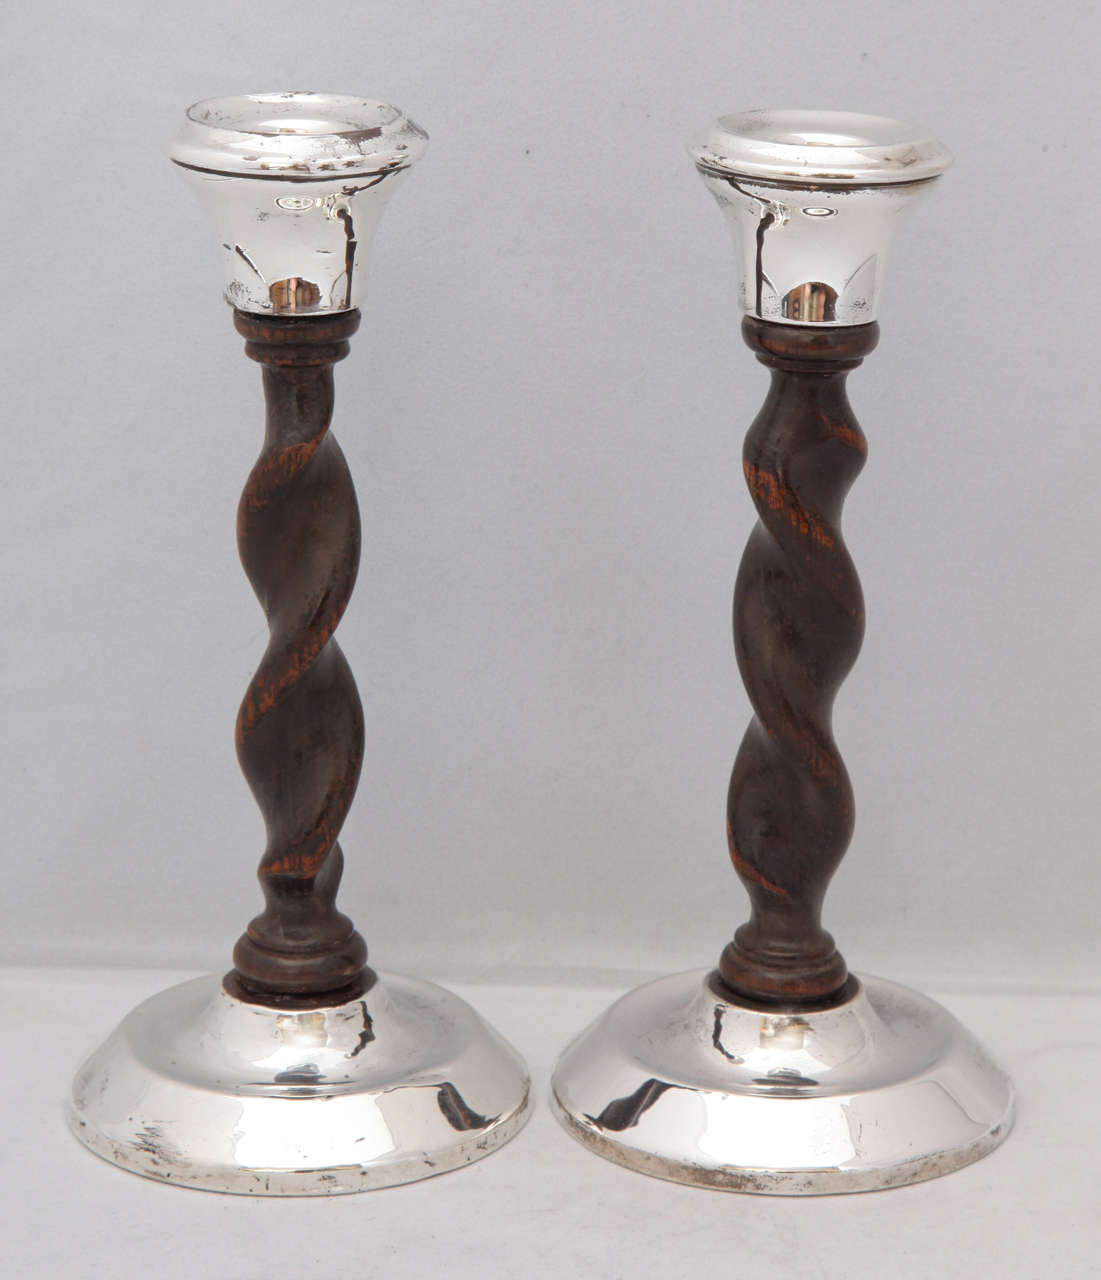 Art Deco, Jacobean-style, sterling silver and barley twist wood candlesticks by Joseph & Richard Griffin, Chester, England, 1925. Measures: 7 3/4